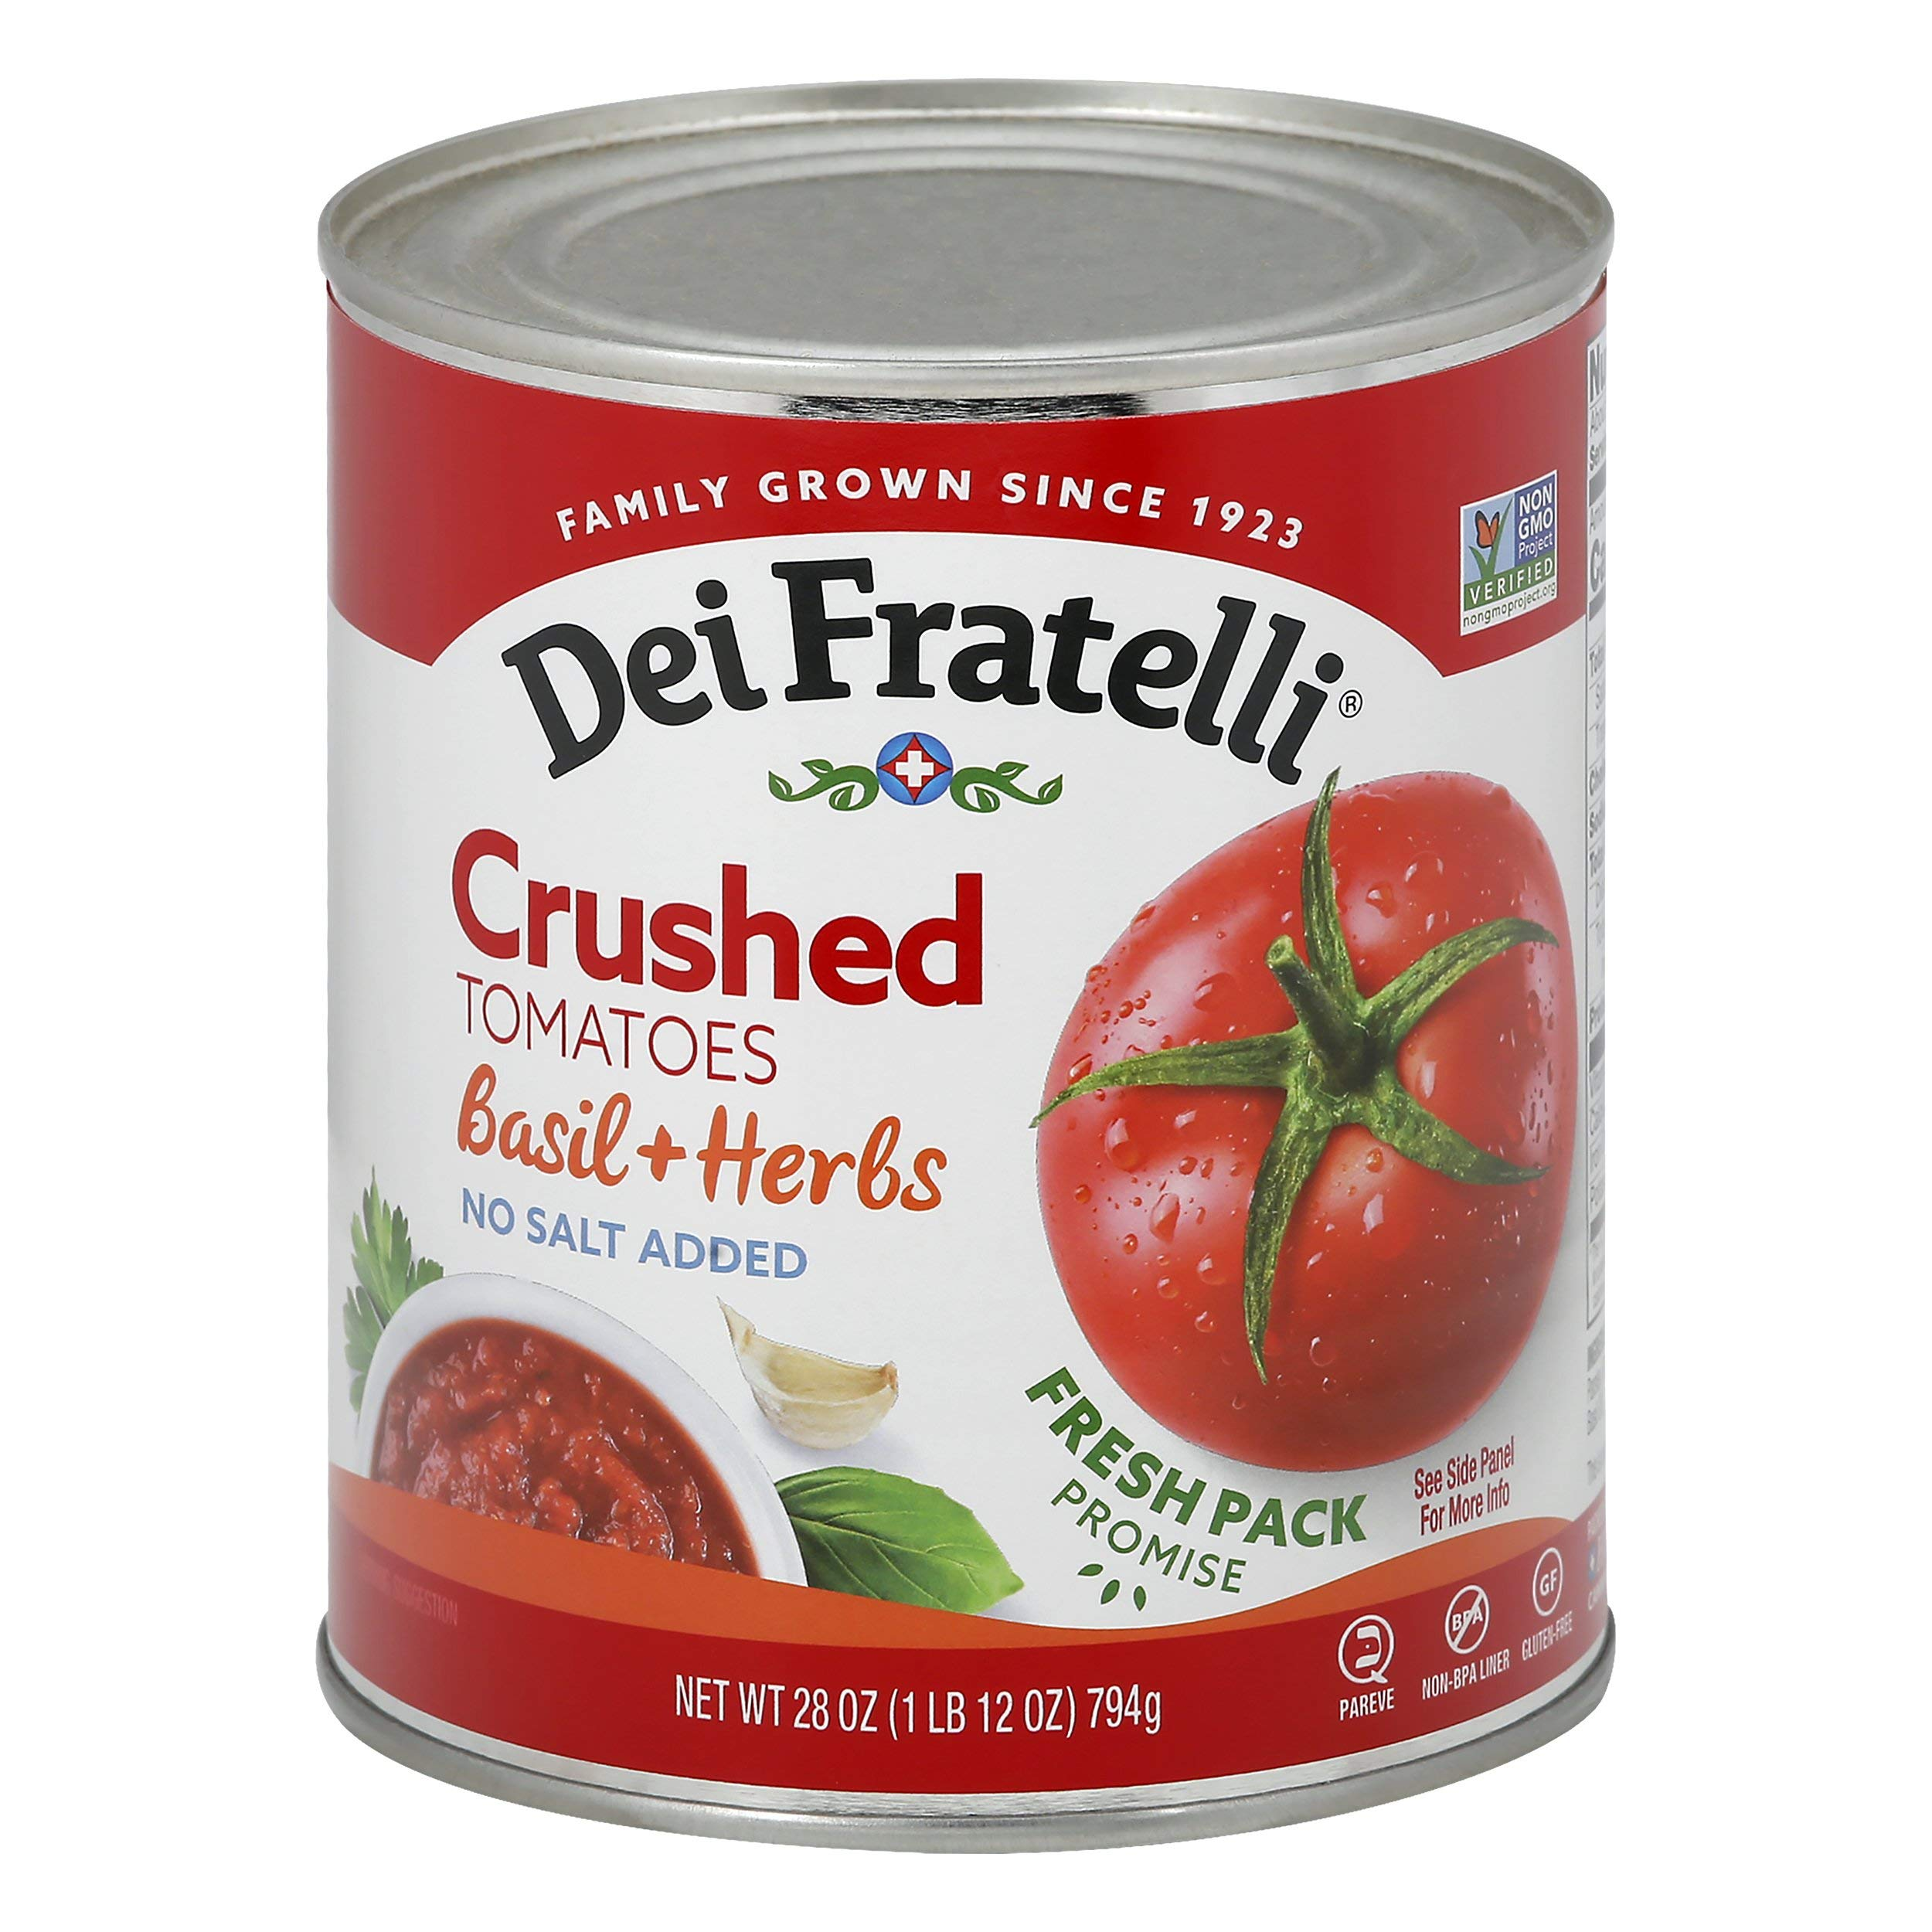 Dei Fratelli Crushed Tomatoes with Basil & Herbs - All Natural - No Water Added - Never from Tomato Paste - 5th Generation Recipe (28 oz. cans; 6 pack)